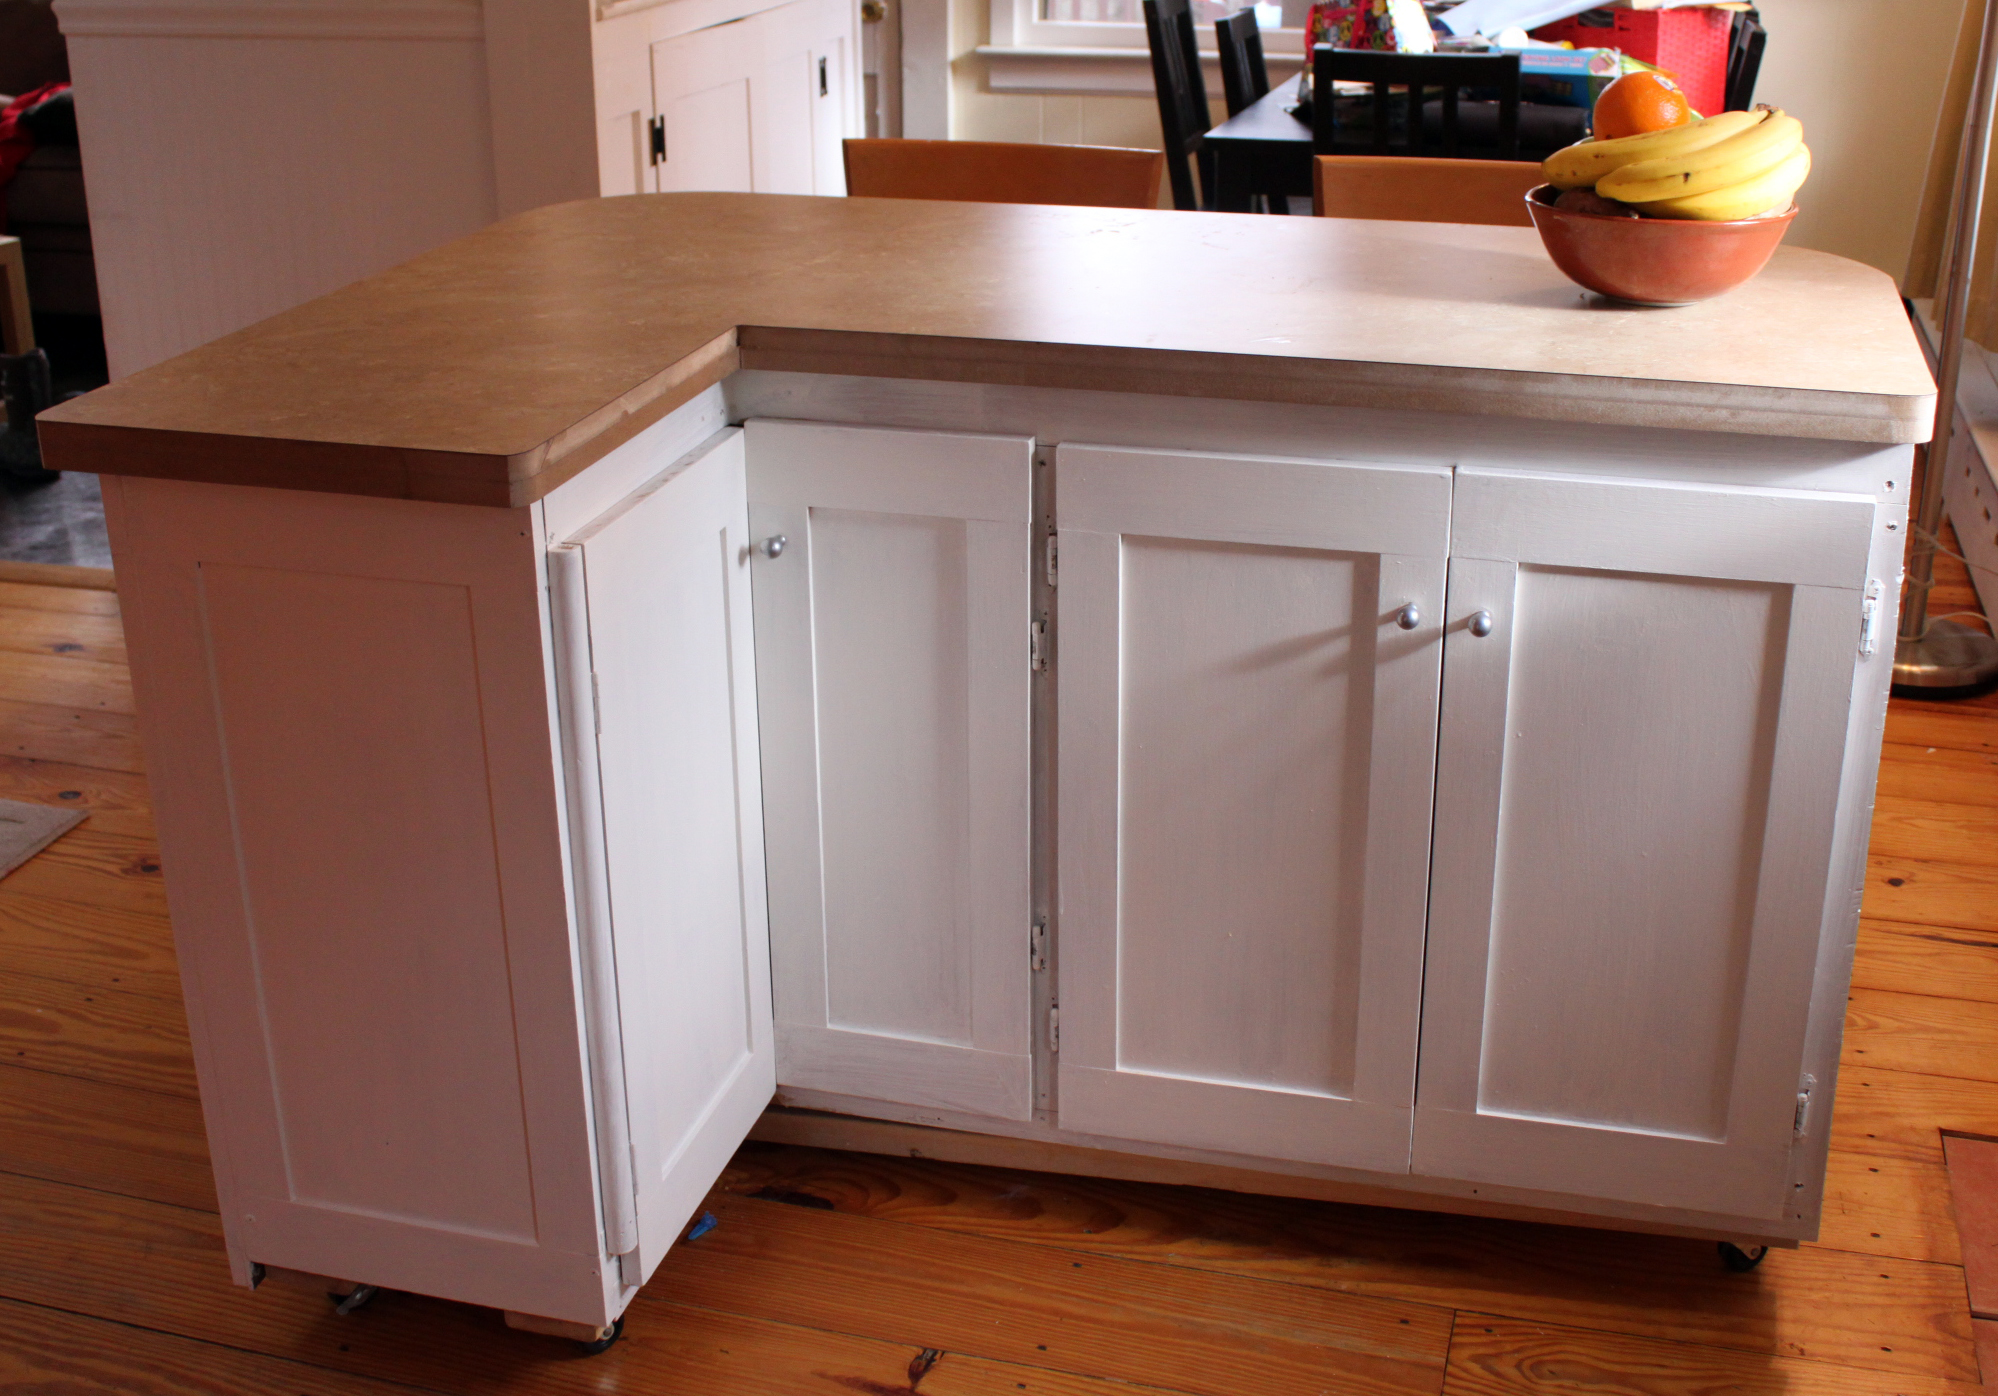 rolling kitchen island cart wine cabinet rolling kitchen chairs Photo Gallery of the Floating kitchen islands for people who want to make the process of cooking easier